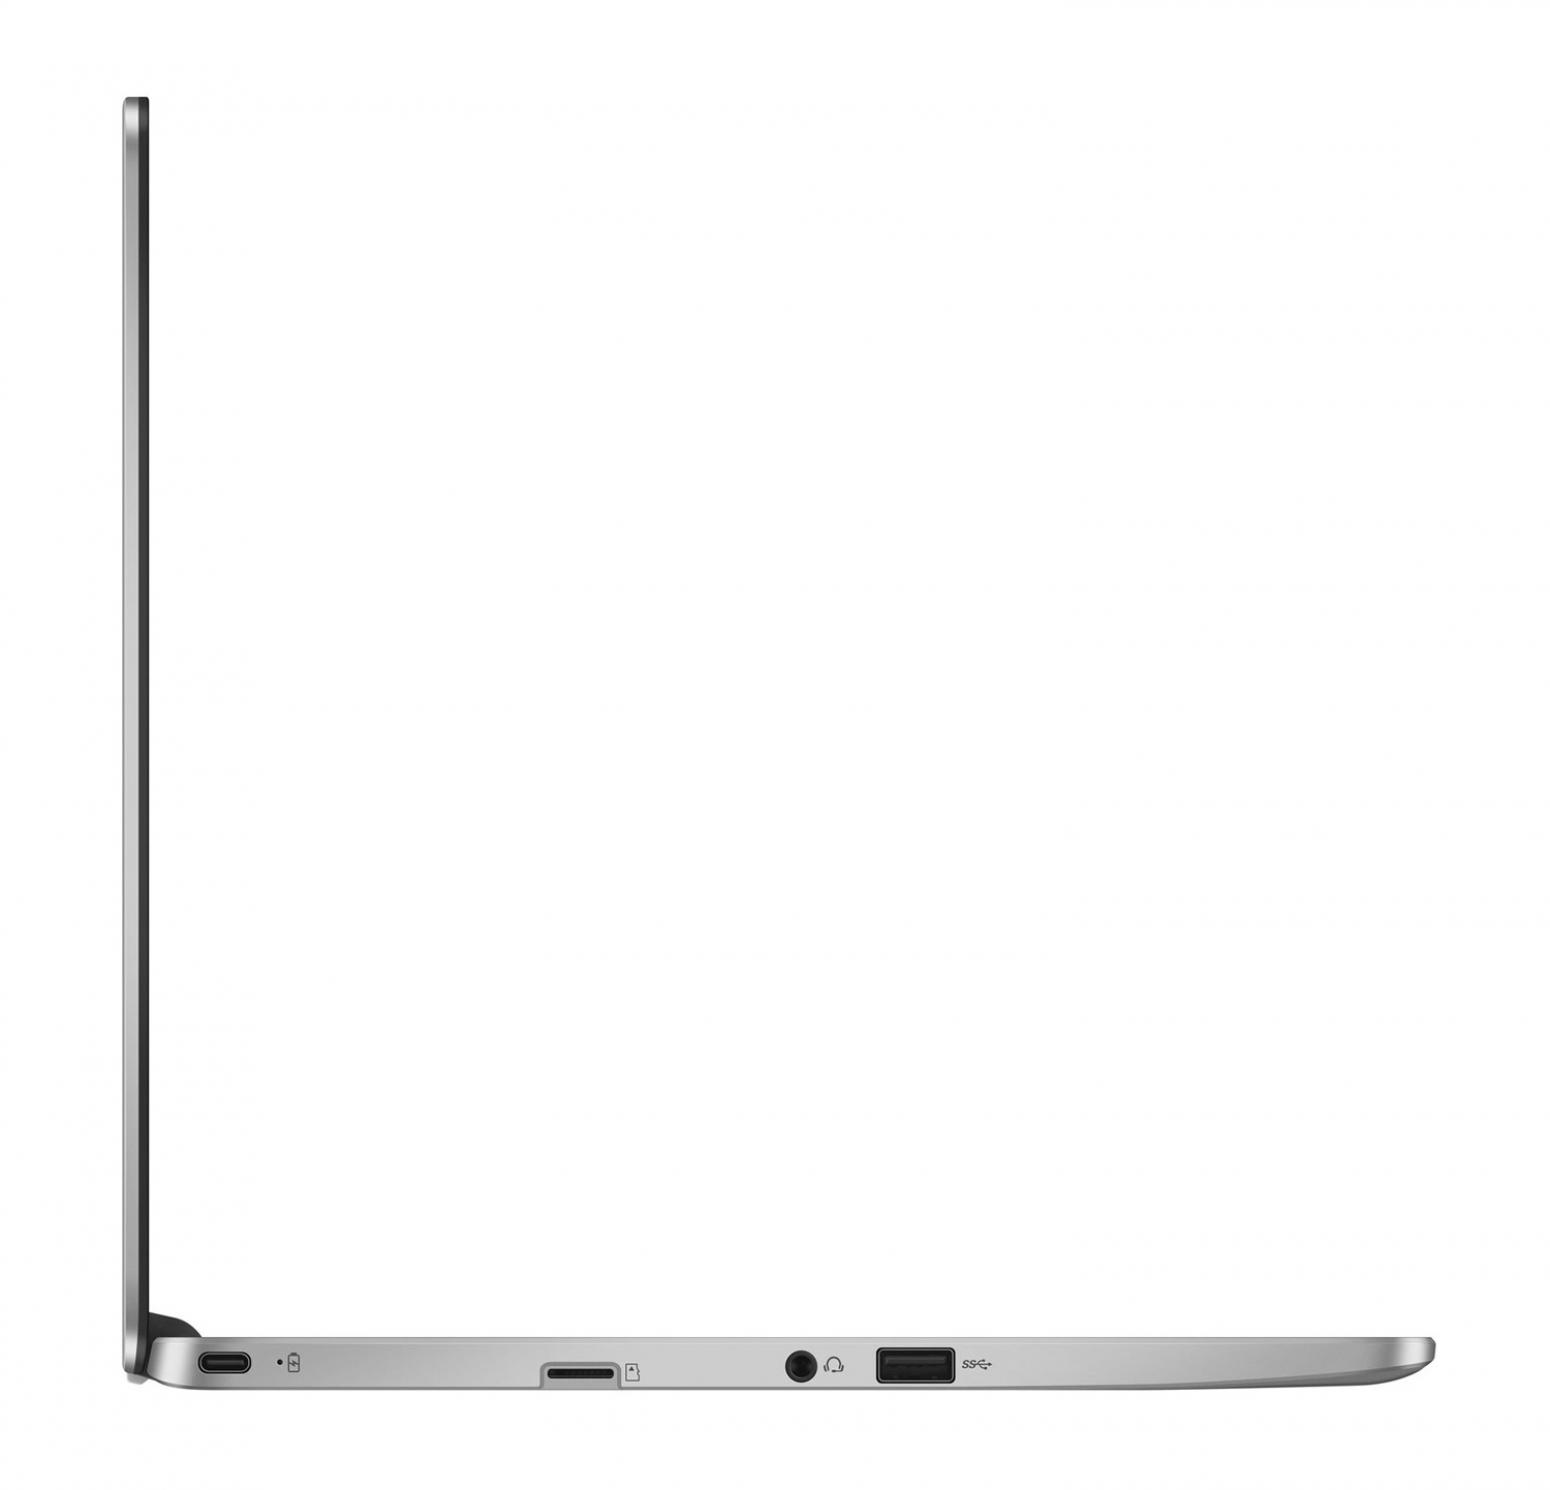 Ordinateur portable Asus Chromebook C423NA-BV0047 Argent - (Chrome OS) - photo 8